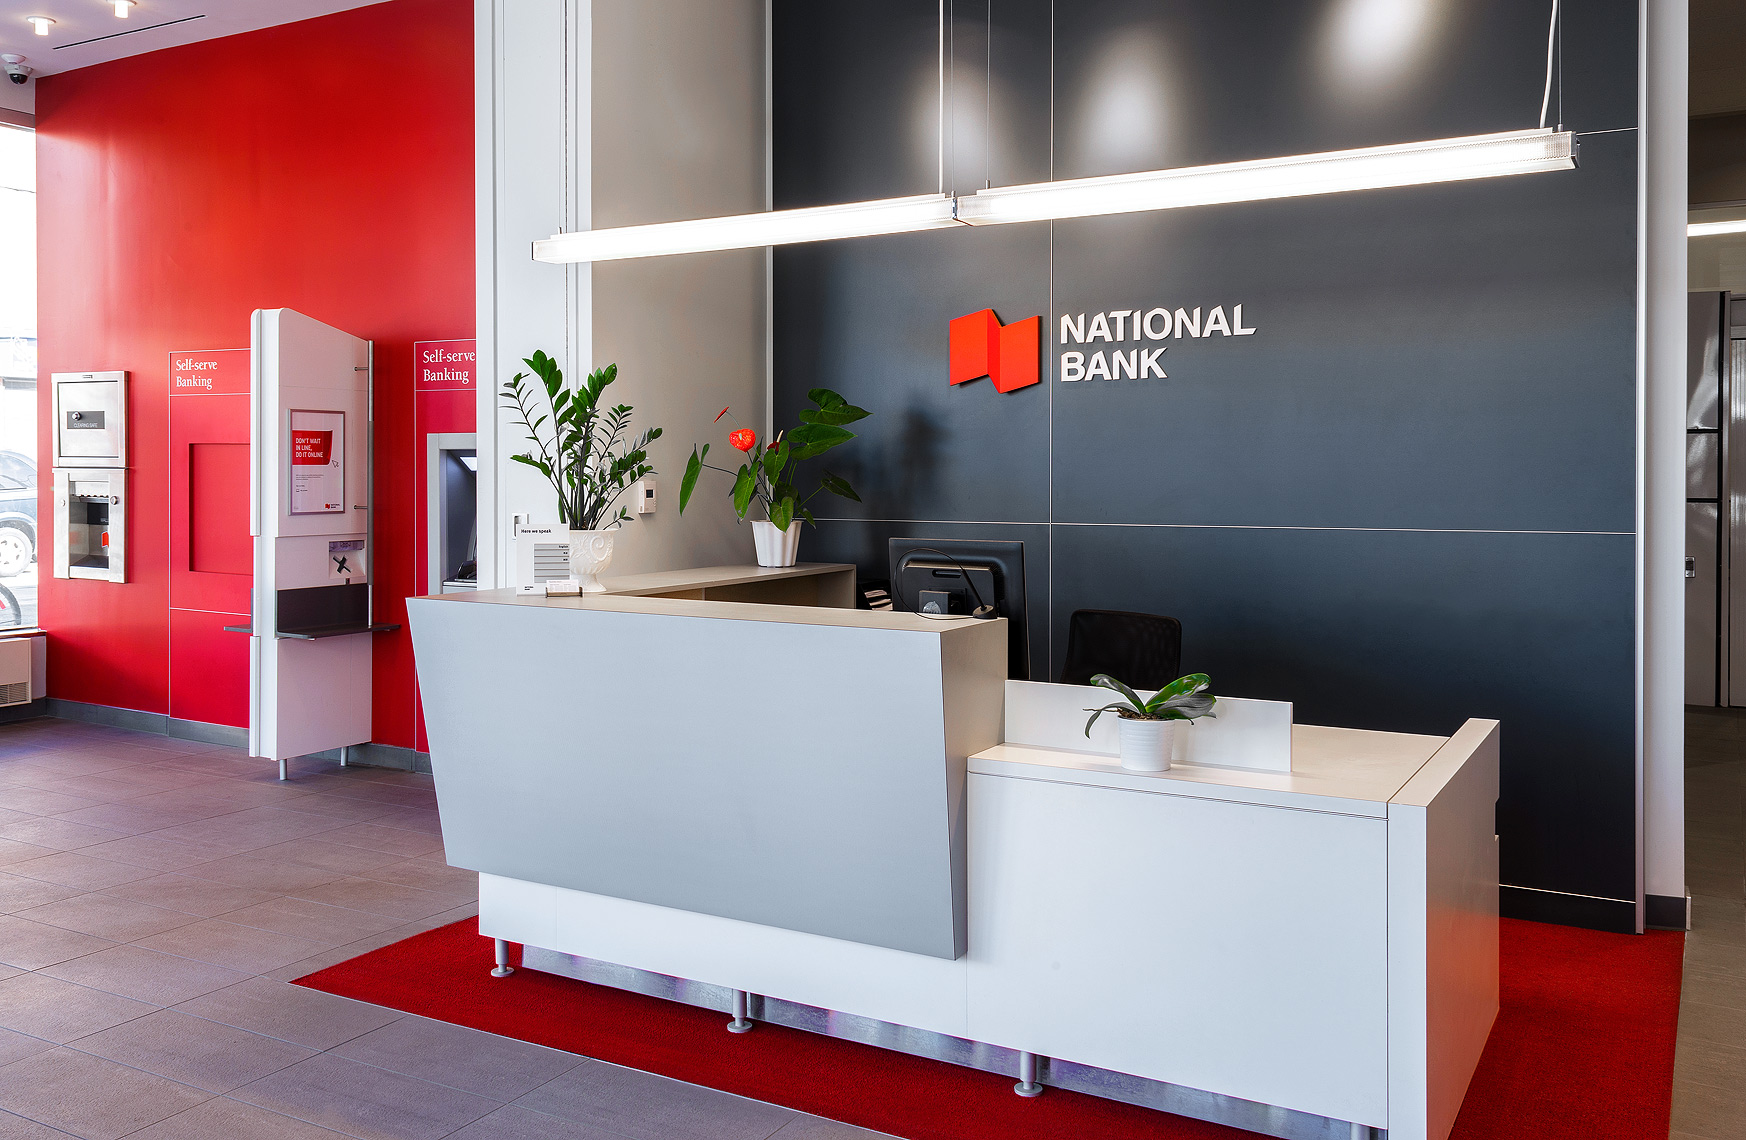 Gillian Jackson | National Bank